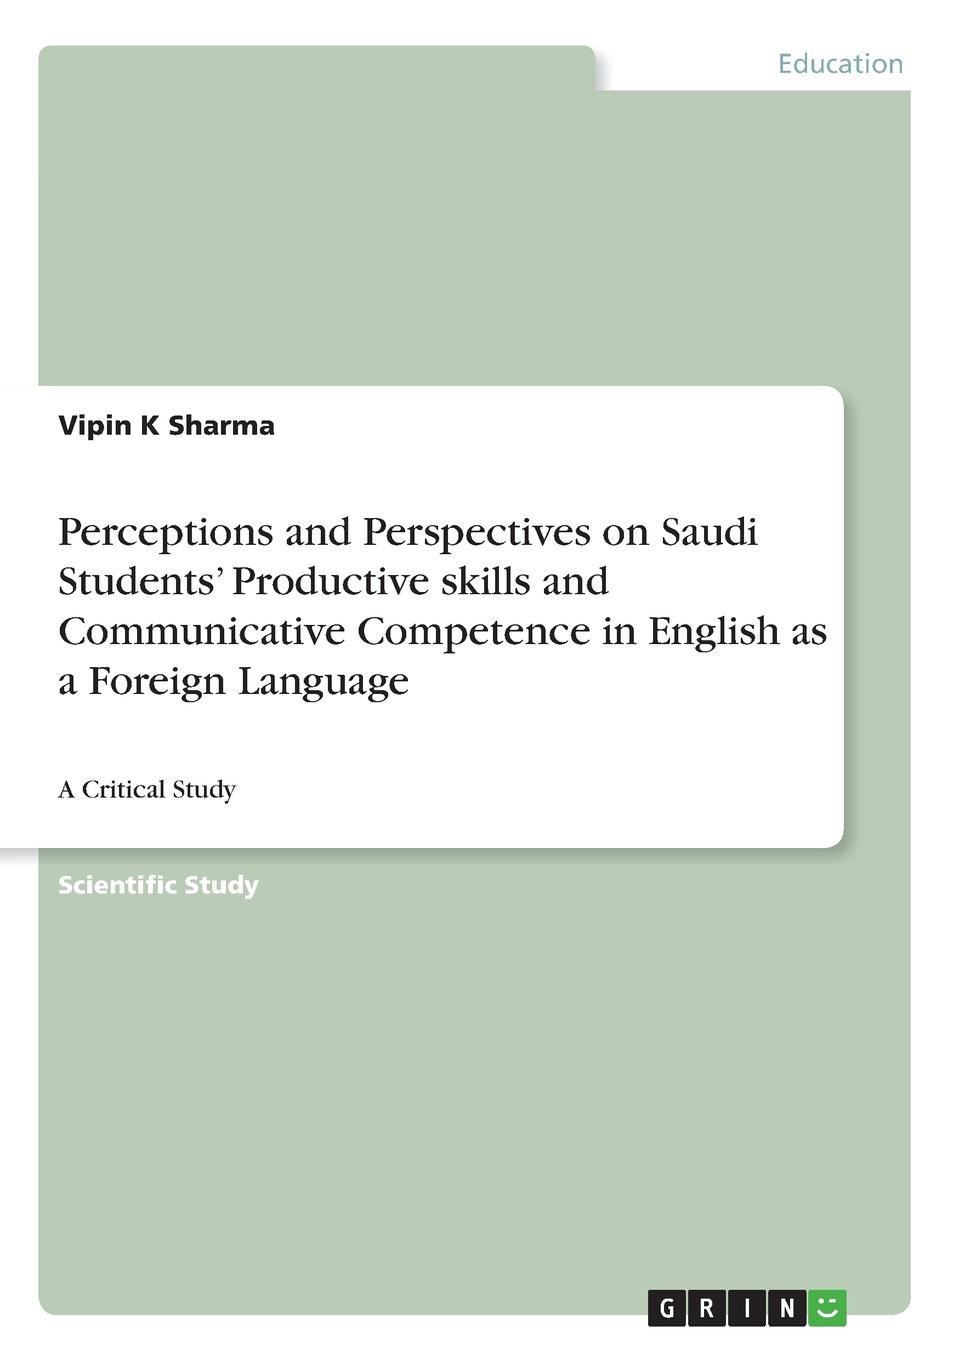 Vipin K Sharma Perceptions and Perspectives on Saudi Students. Productive skills and Communicative Competence in English as a Foreign Language learning english language via snss and students academic self efficacy